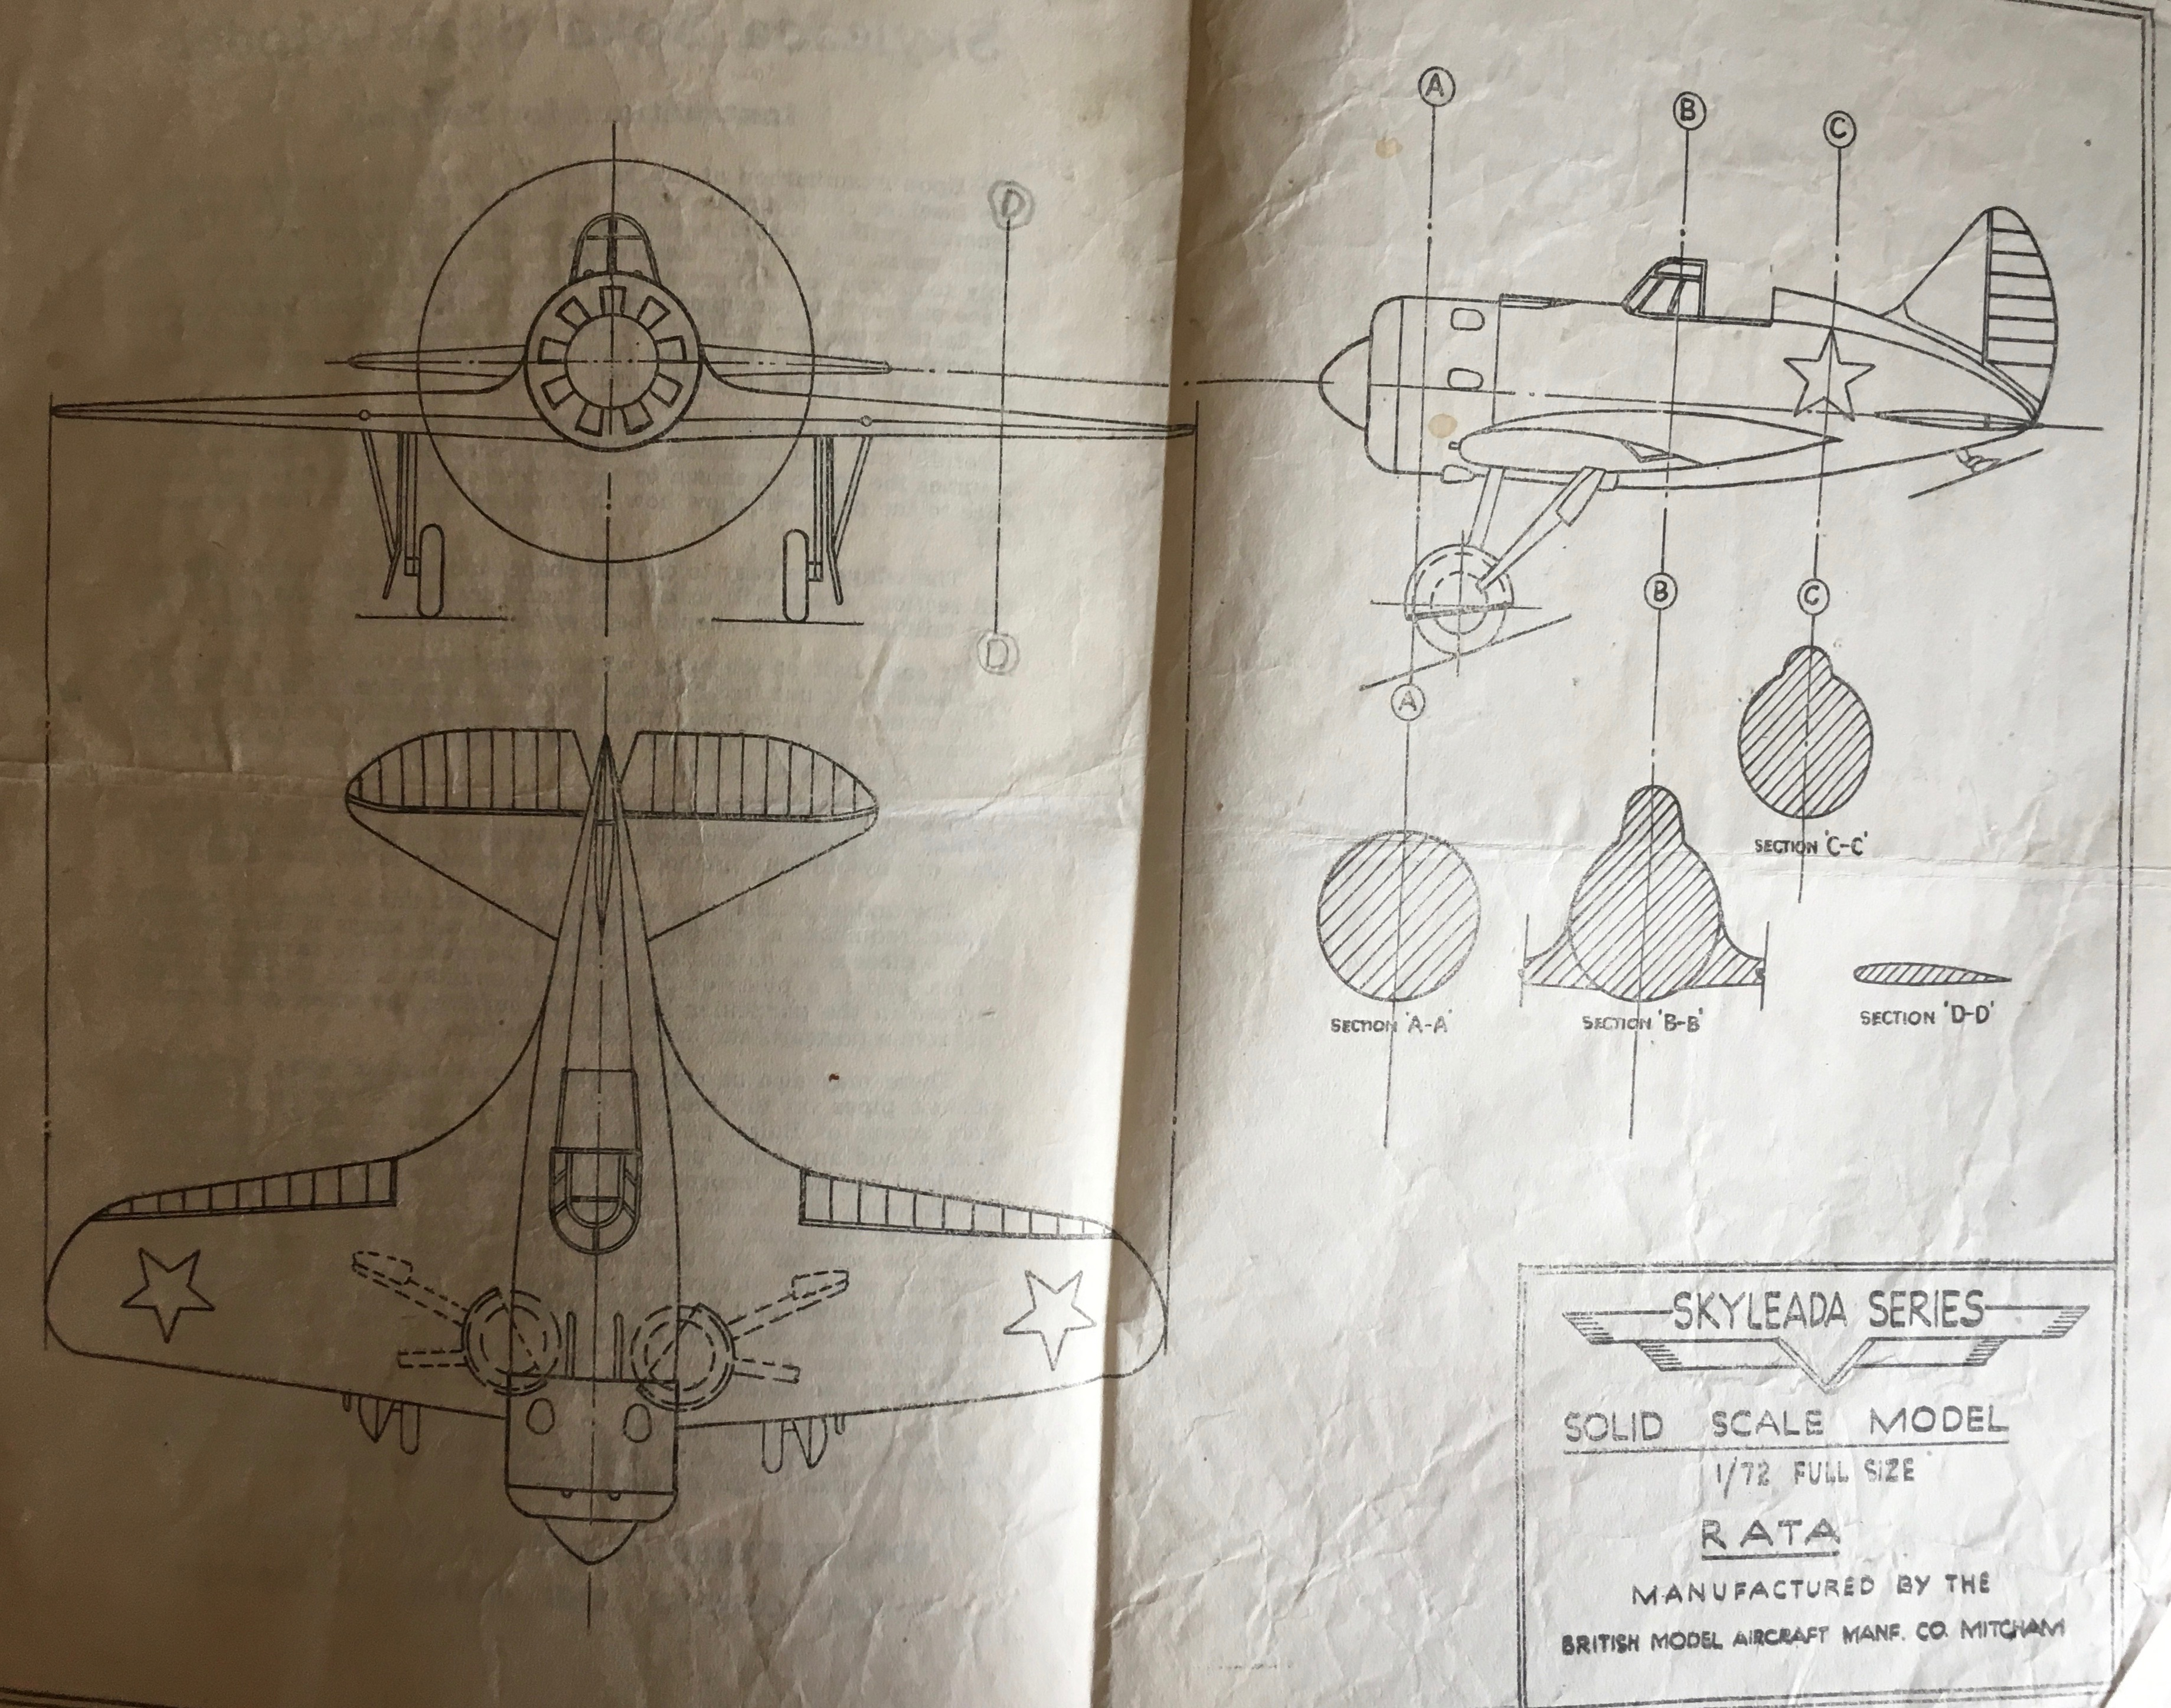 Scale drawing of one of Cliff's model aircraft.